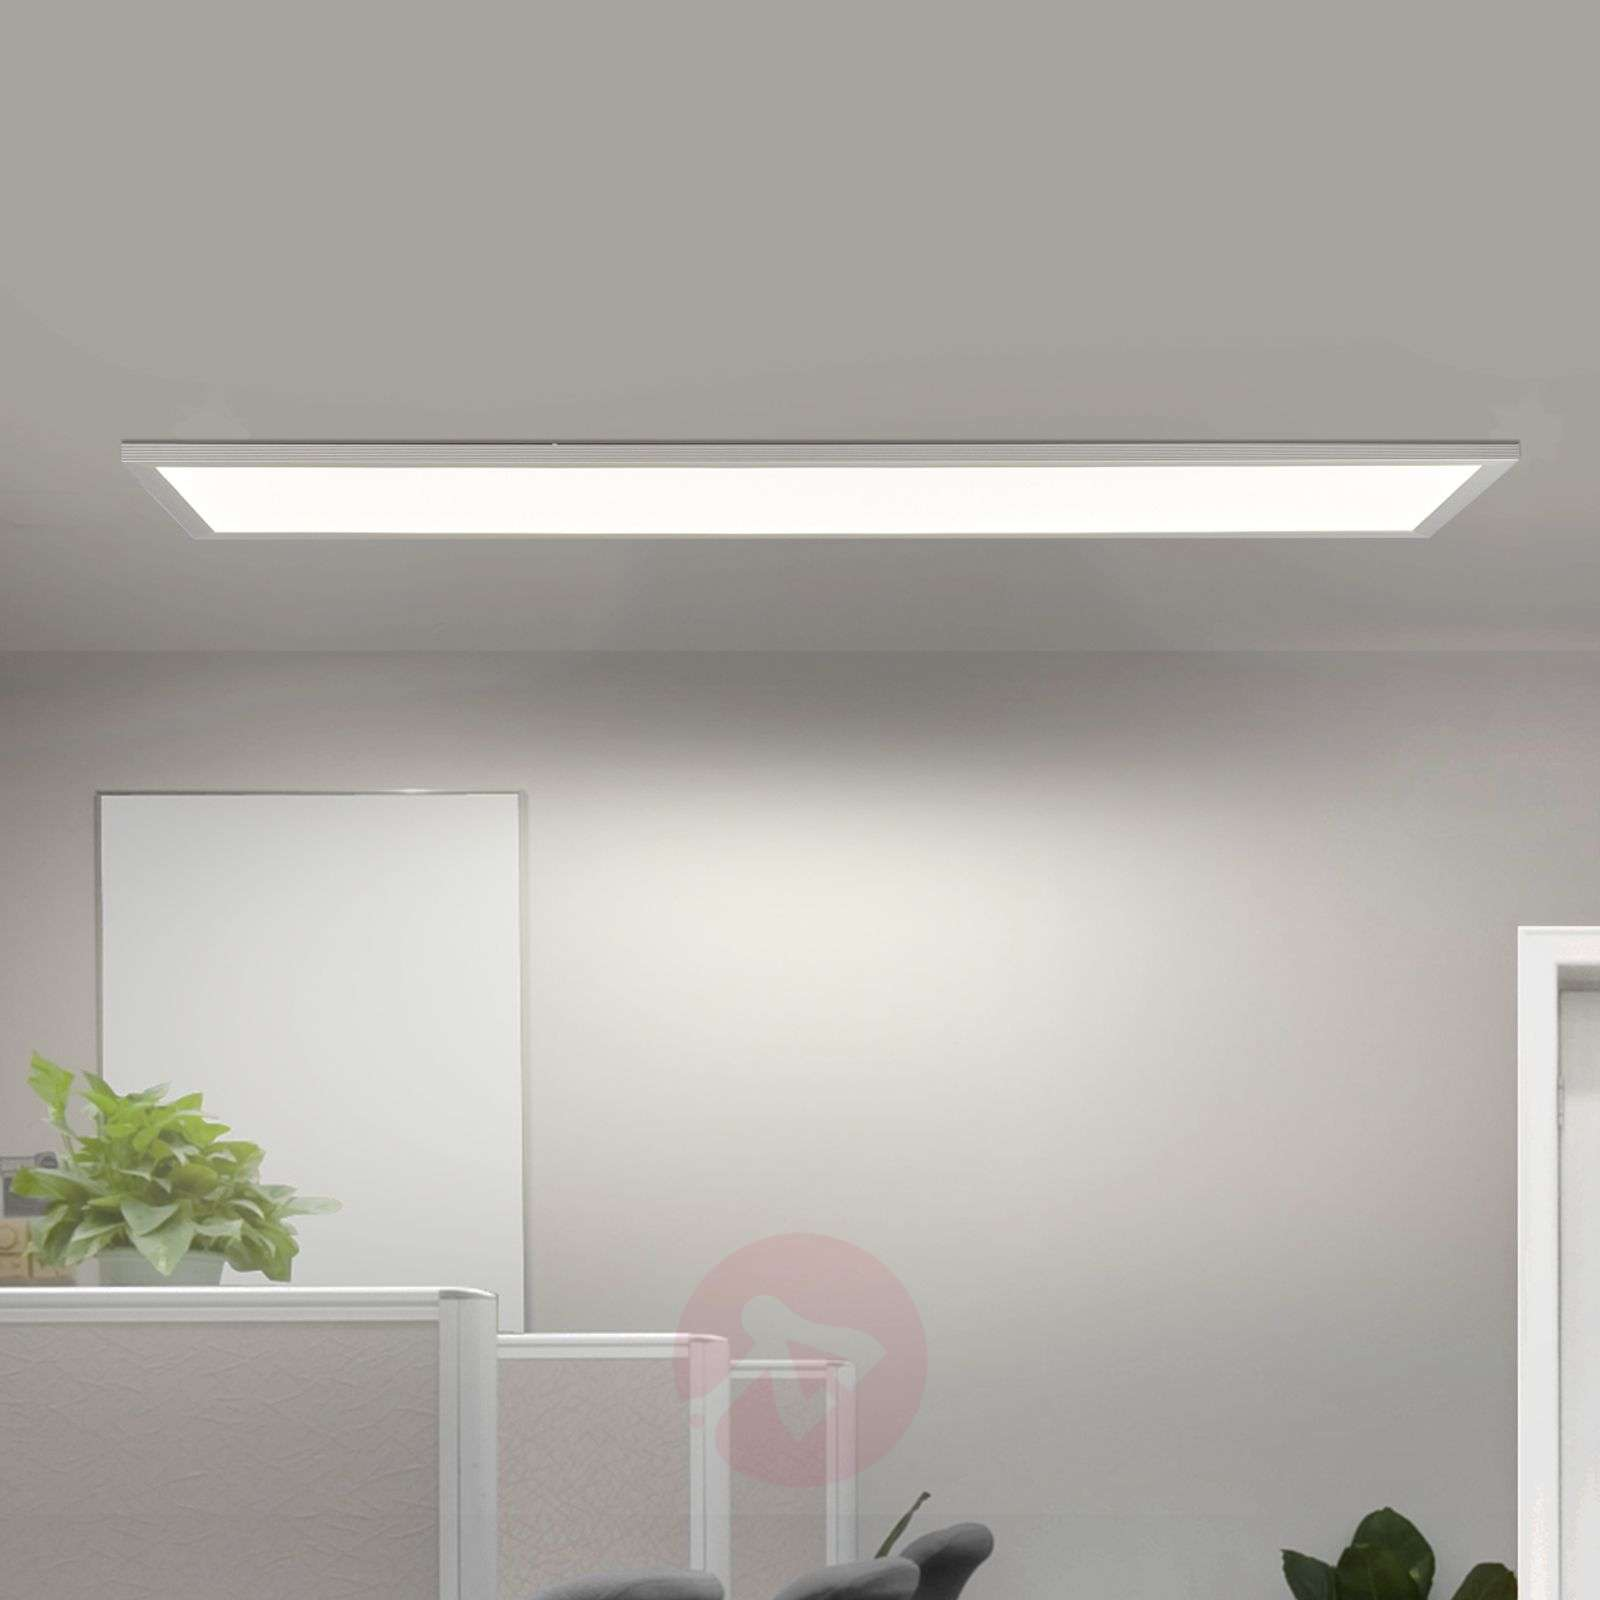 Pannello LED All in one, BAP, luce diurna-3002138-07